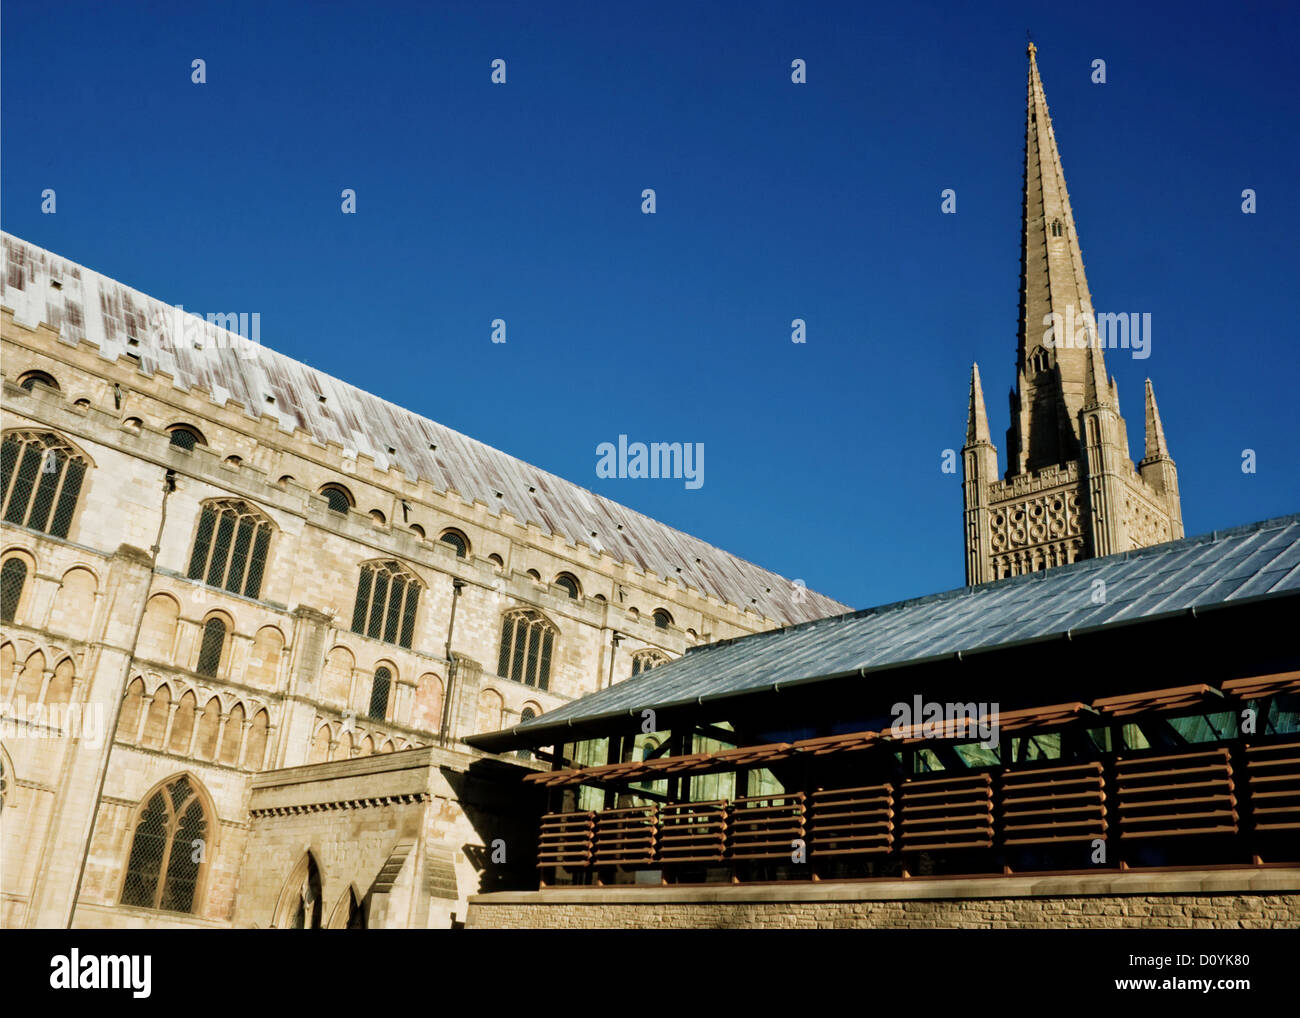 View of Norwich Cathedral and The Hostry in Norfolk, England. Taken from the south-east. Stock Photo